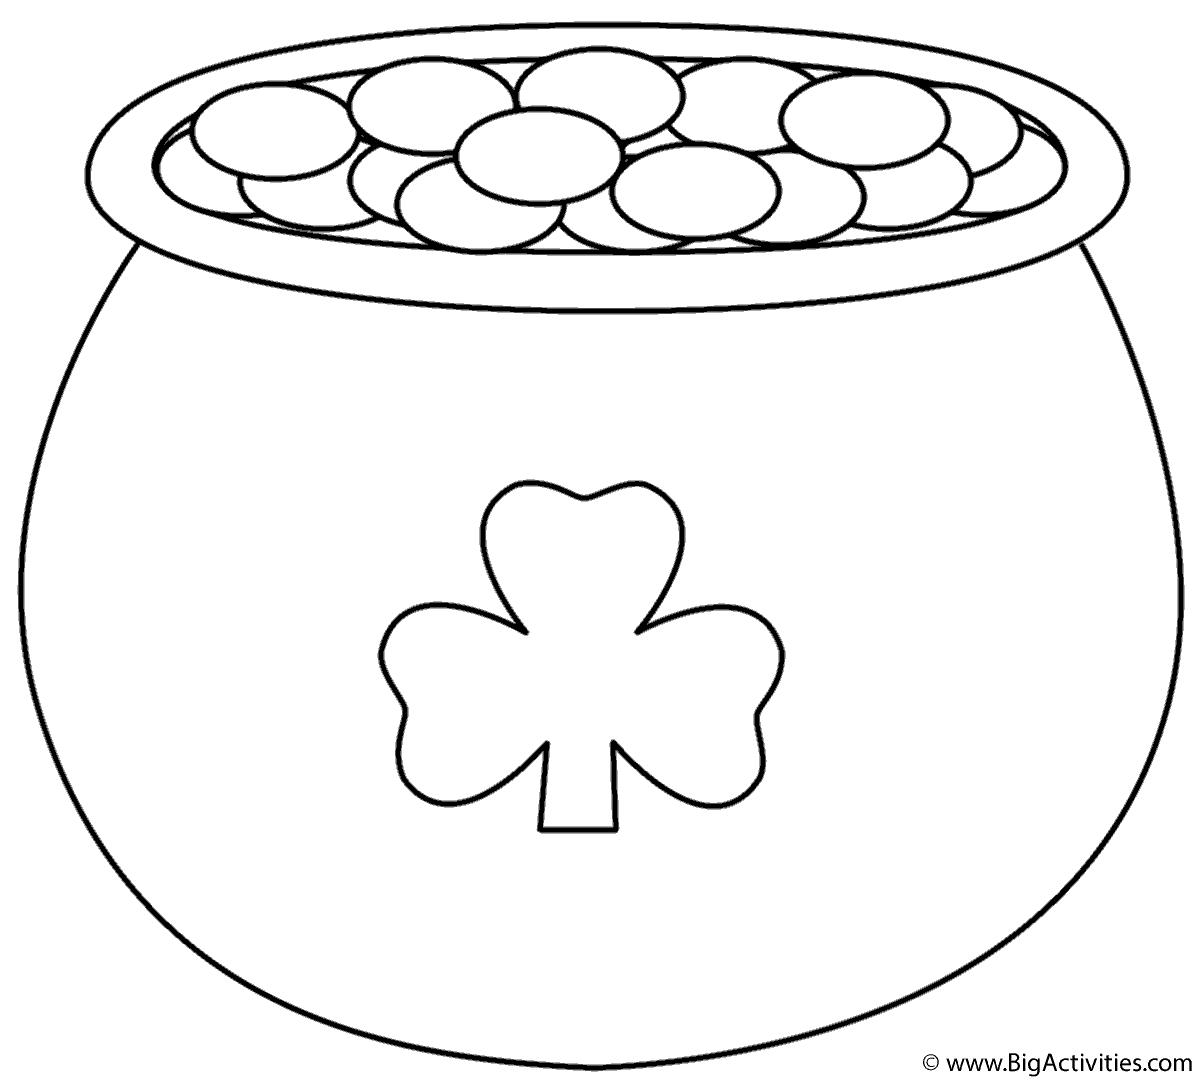 Pot Of Gold With Shamrock Coloring Page St Patrick S Day